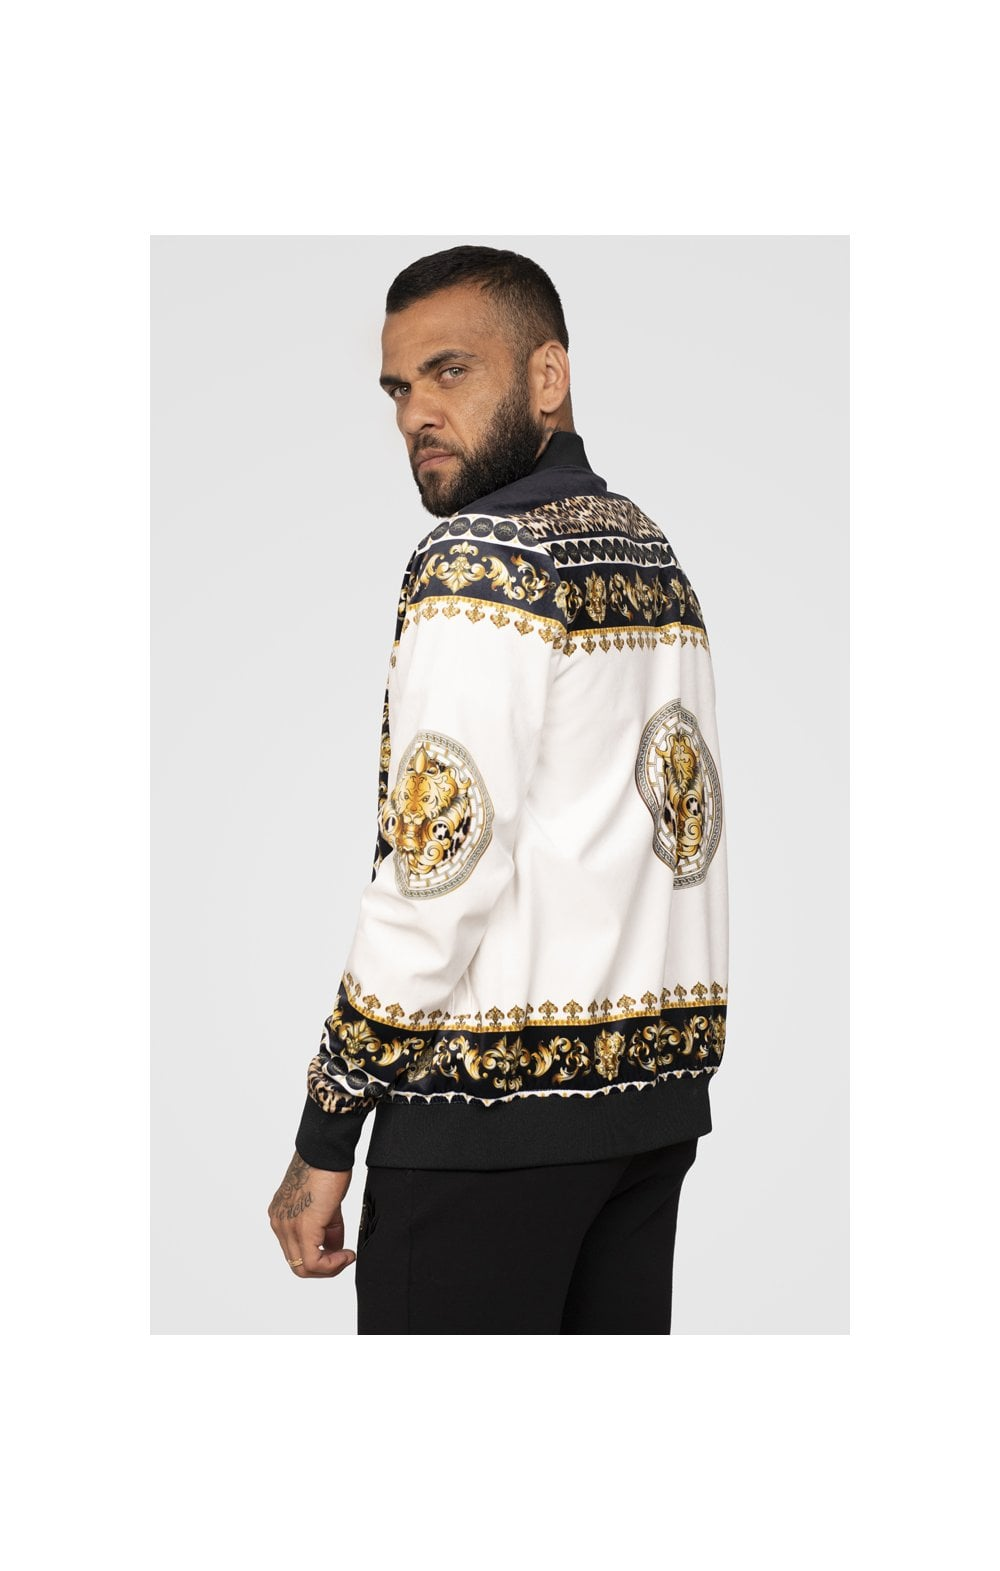 Load image into Gallery viewer, SikSilk x Dani Alves Bomber Jacket - Black, Off White & Gold (3)